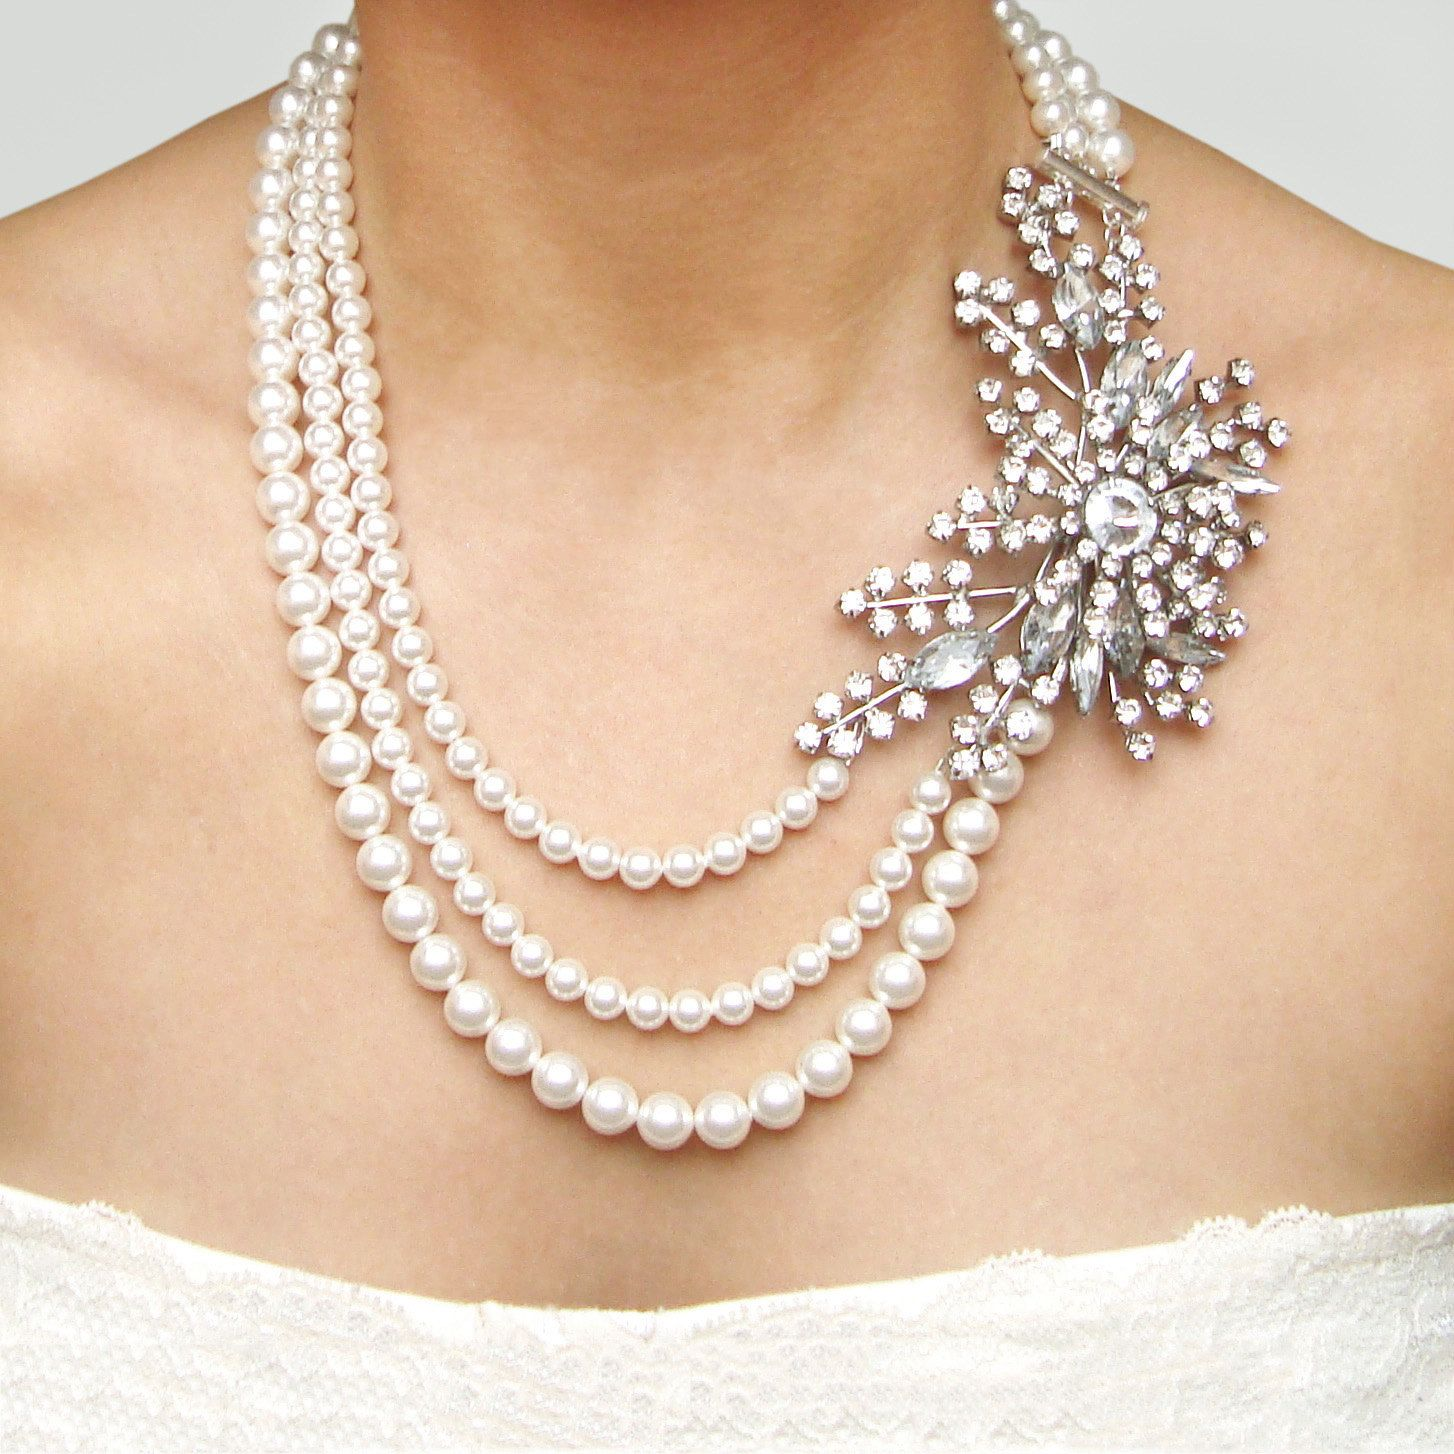 Statement Bridal Necklace Rhinestone Pearl Wedding Vintage Jewelry Art Deco